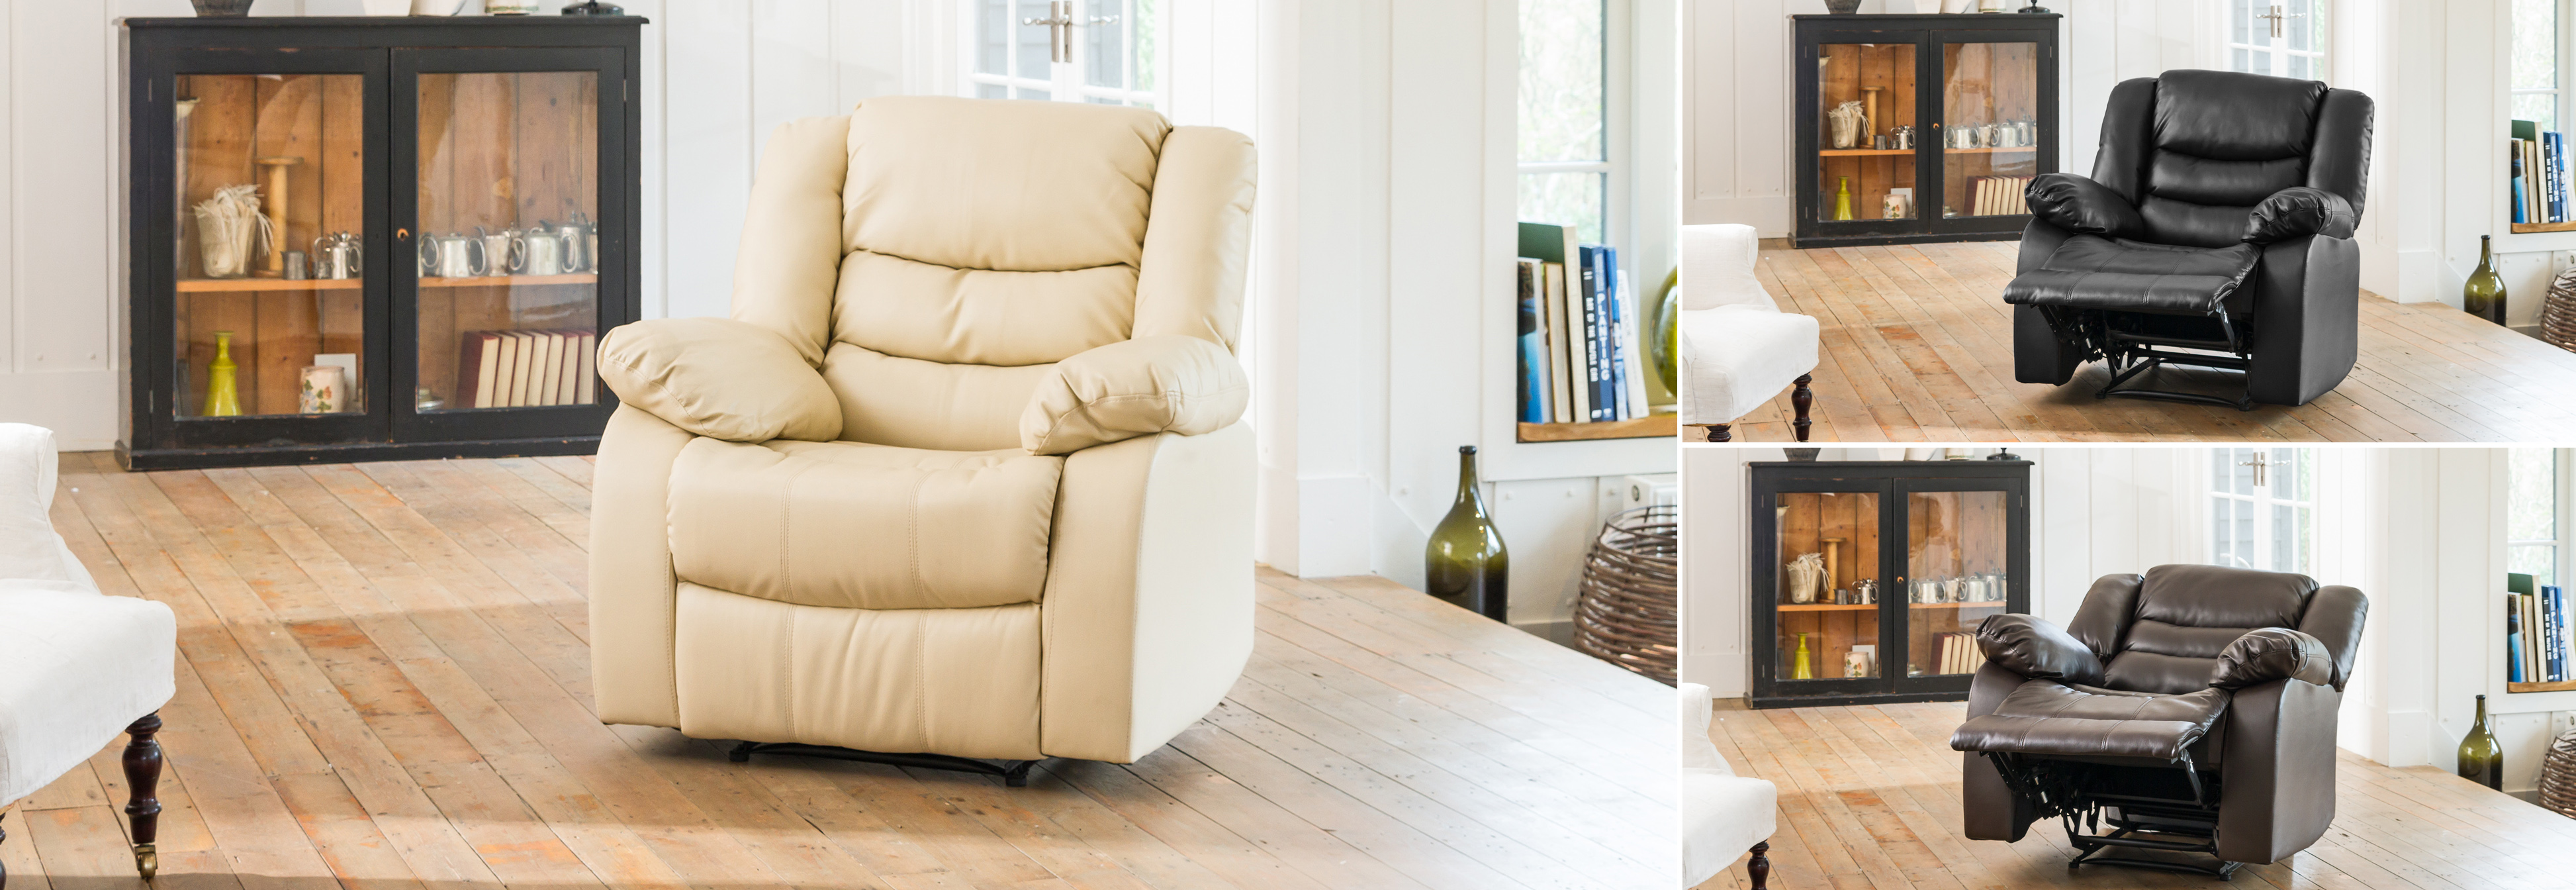 Seville Reclining Chair cream